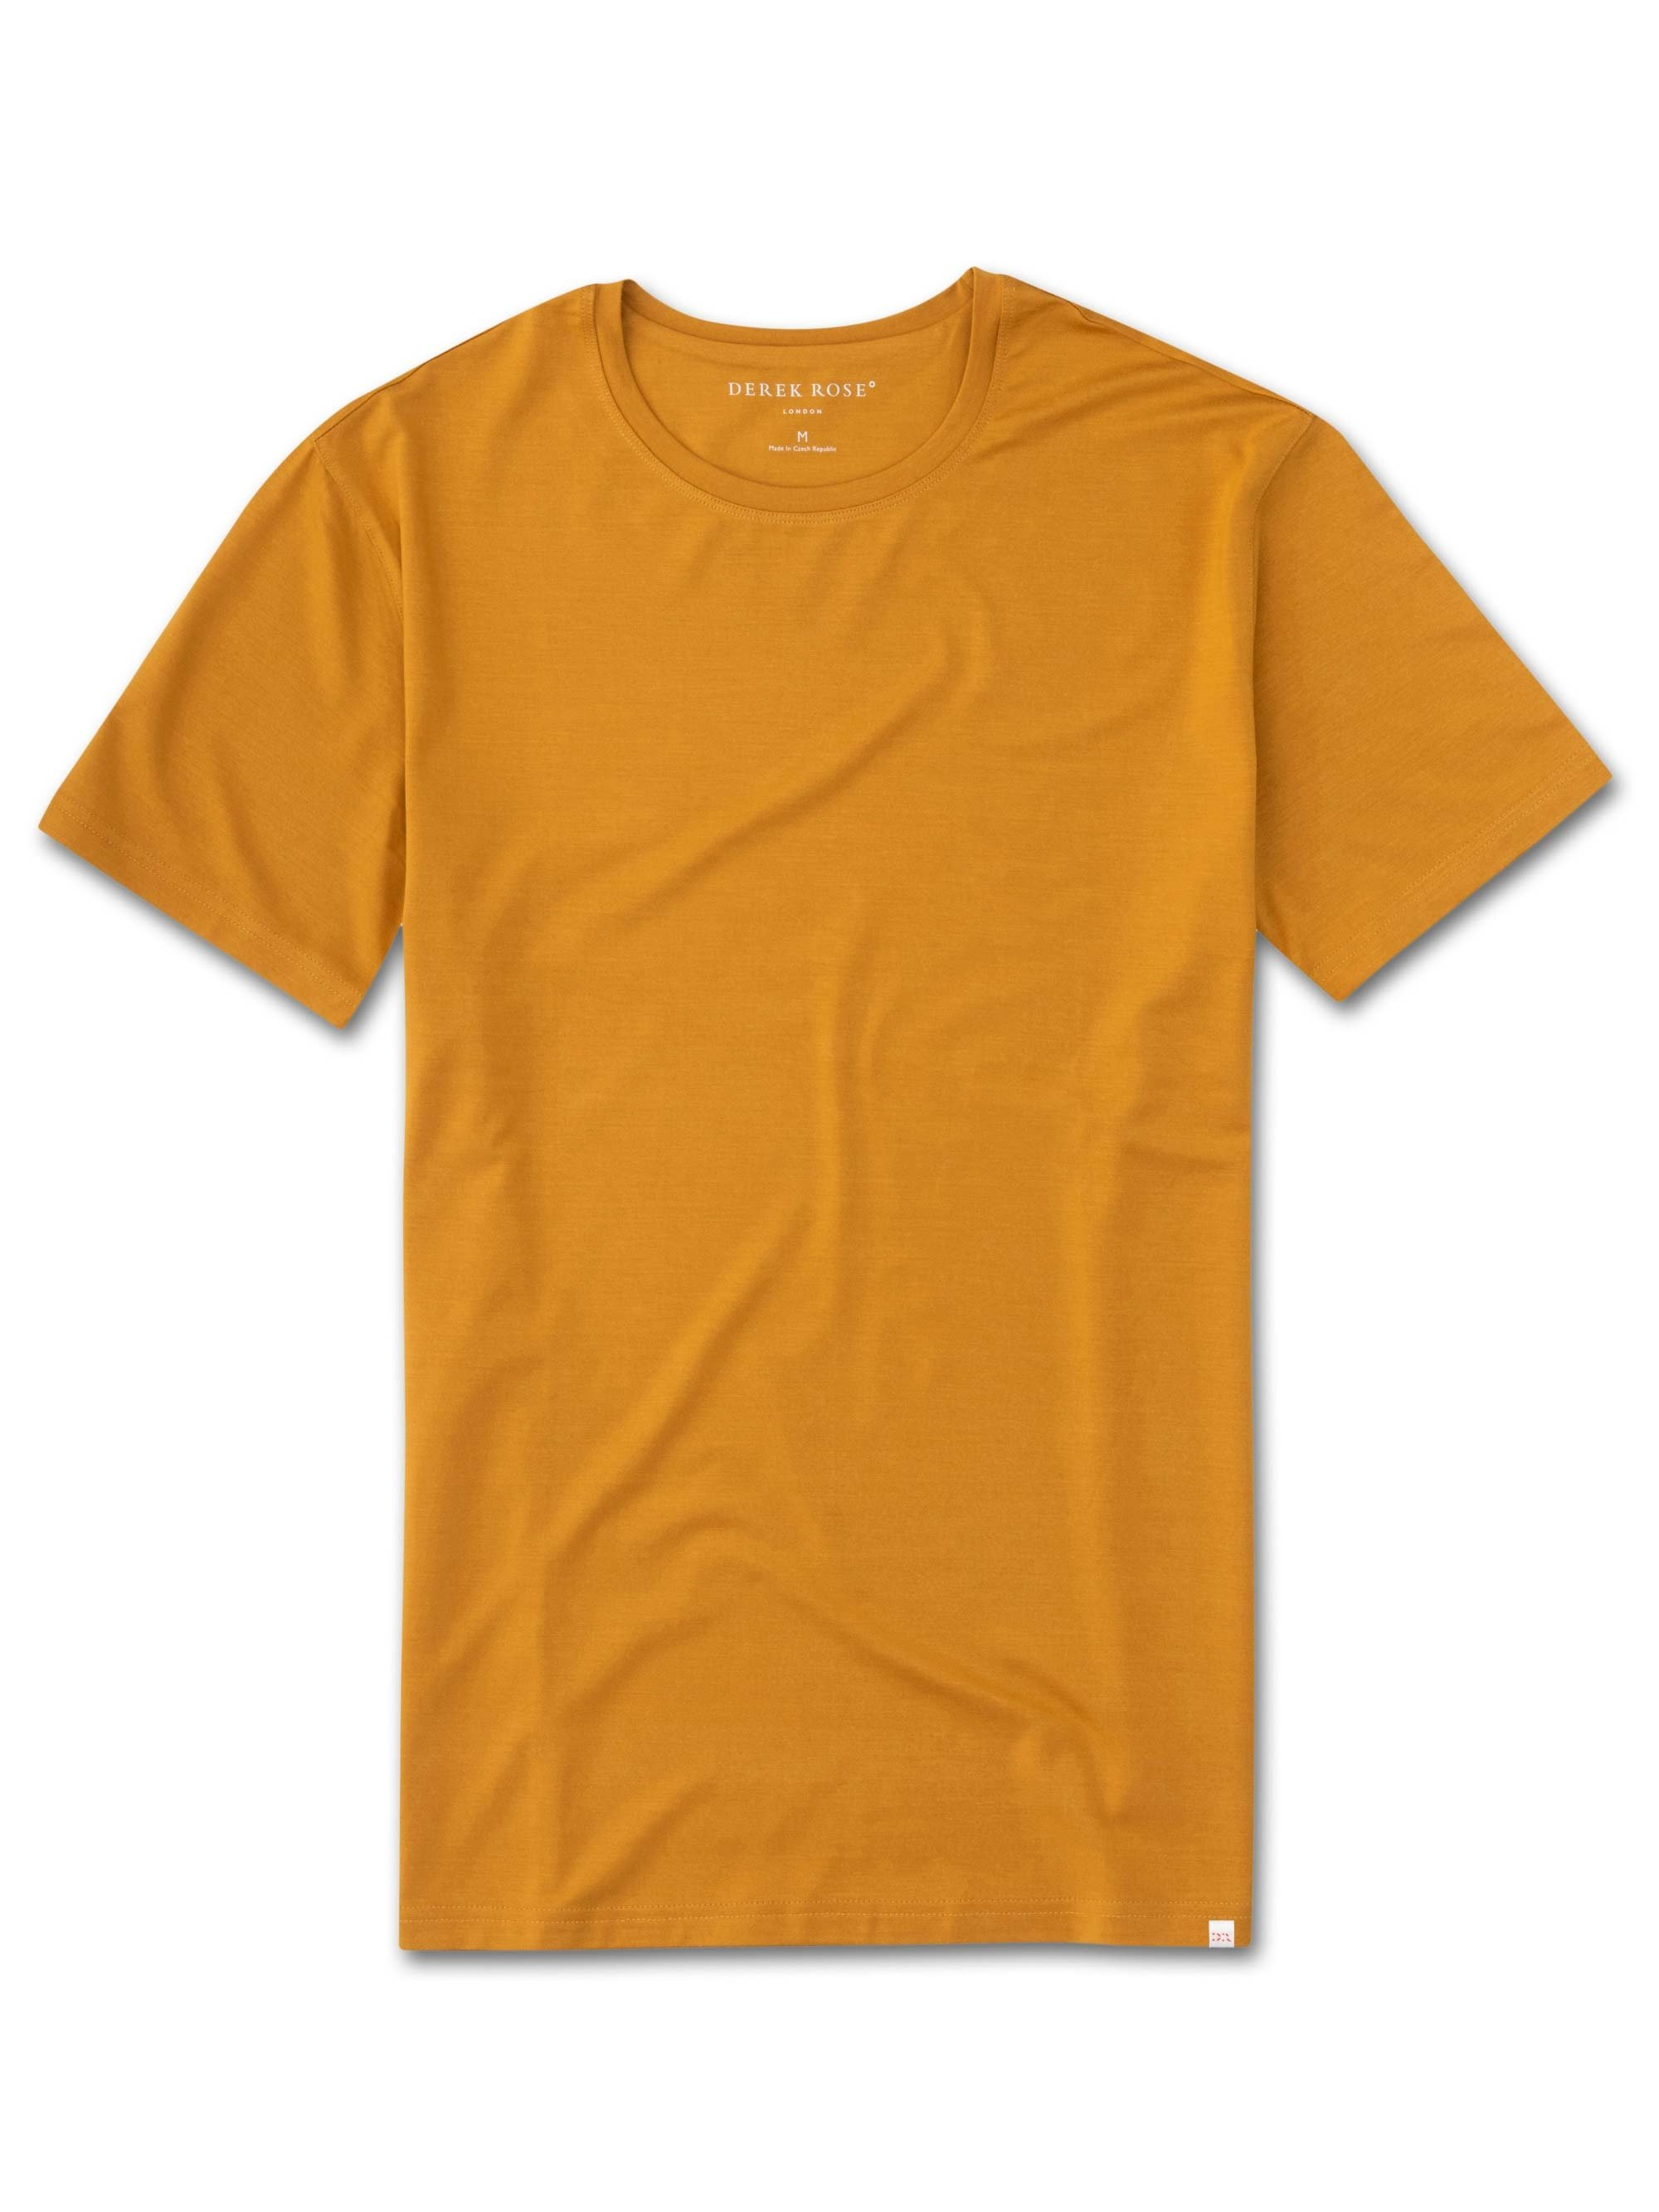 Men's Short Sleeve T-Shirt Basel 7 Micro Modal Stretch Mustard